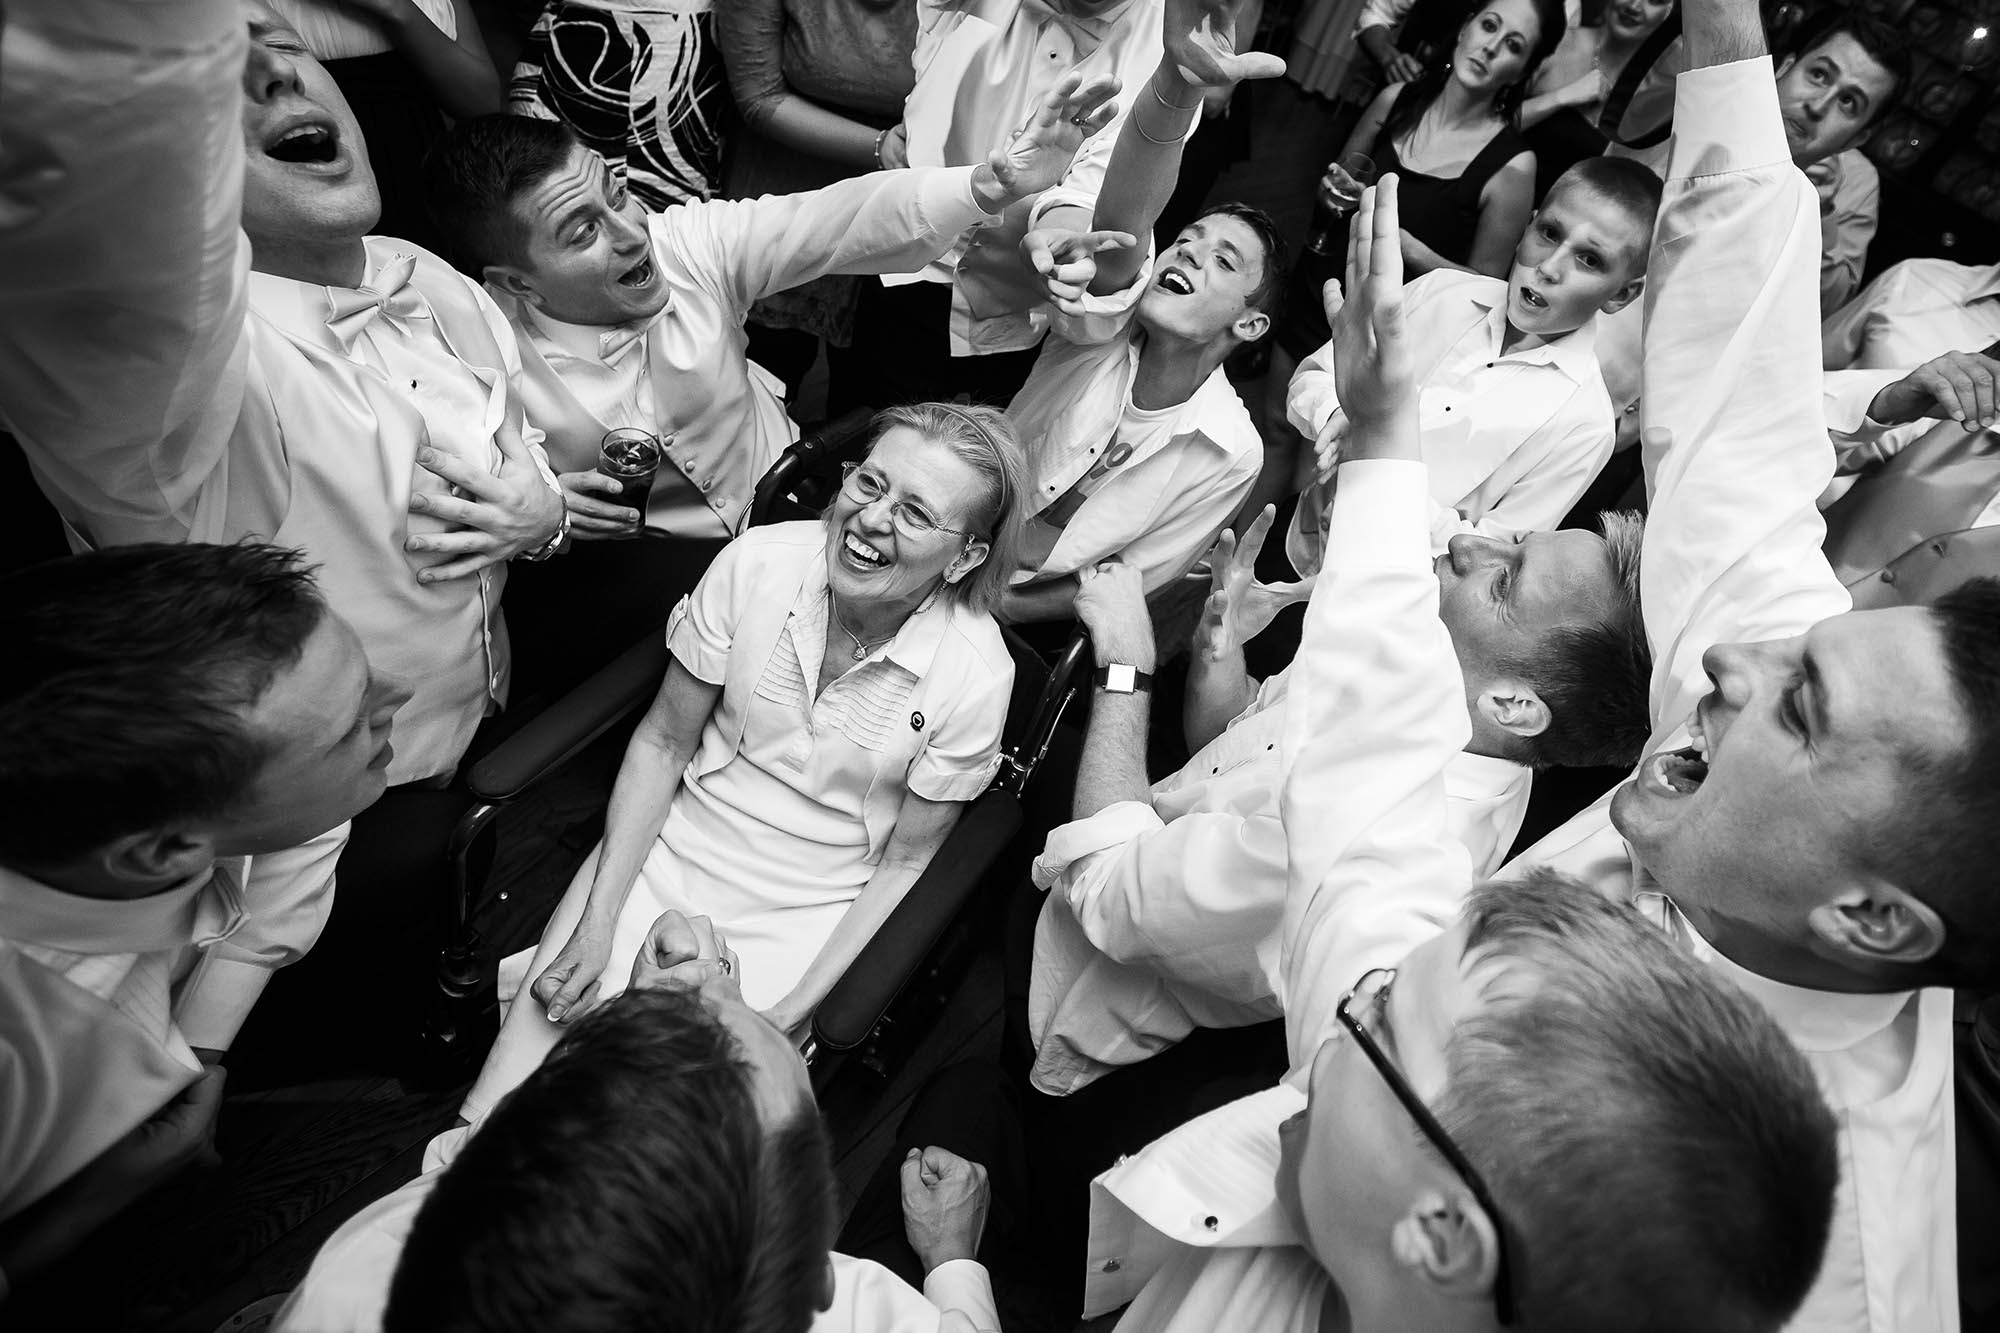 The bride's wheelchair bound aunt beams with joy as the groomsmen serenade her on the dance floor during the reception at Kirkland Country Club.